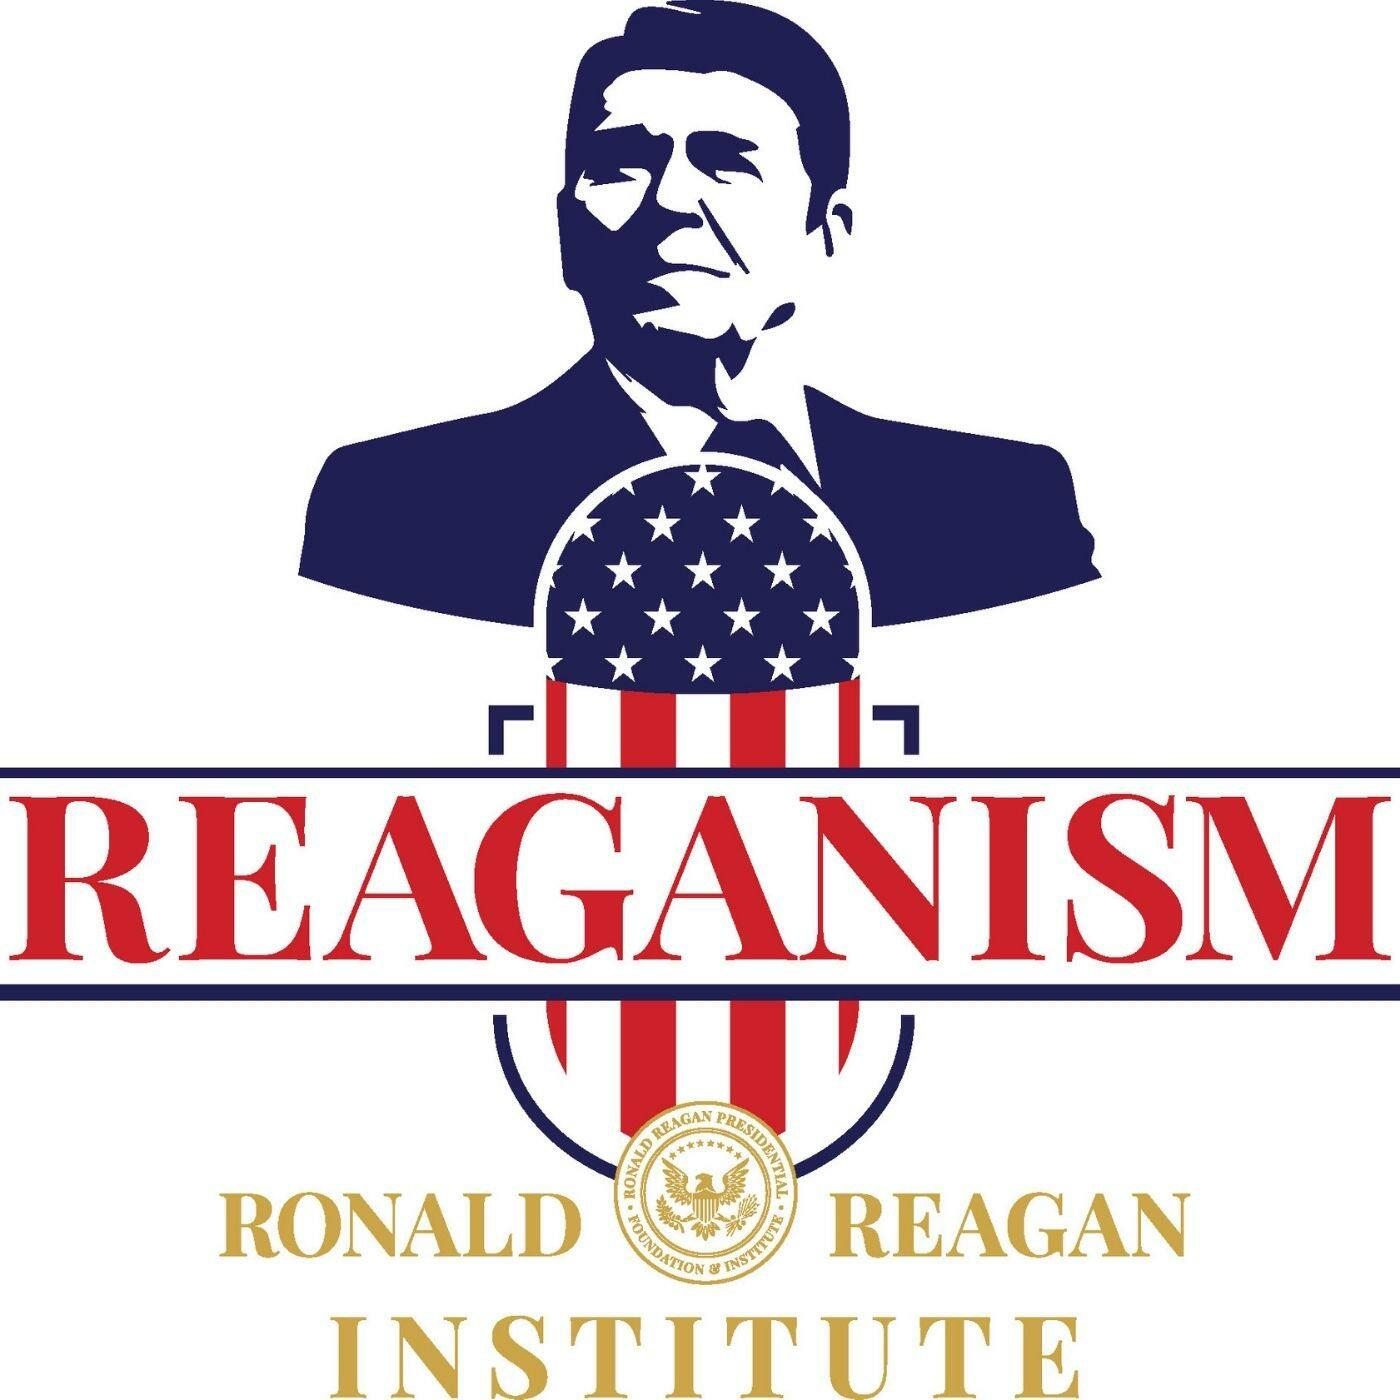 Listen Free to Reaganism on iHeartRadio Podcasts | iHeartRadio